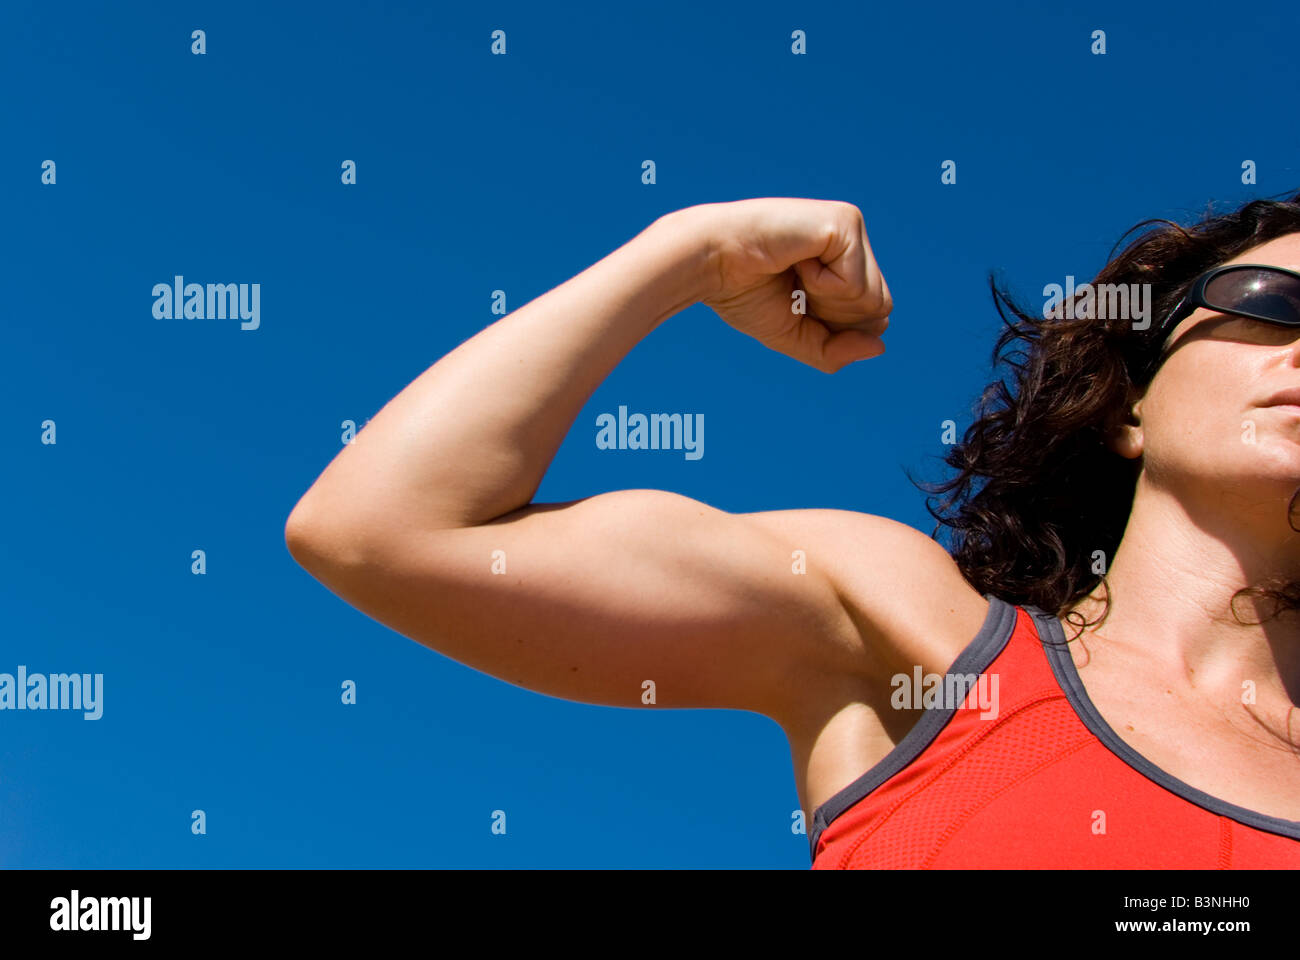 Model Released sporty female flexing biceps against a clear blue sky - Stock Image